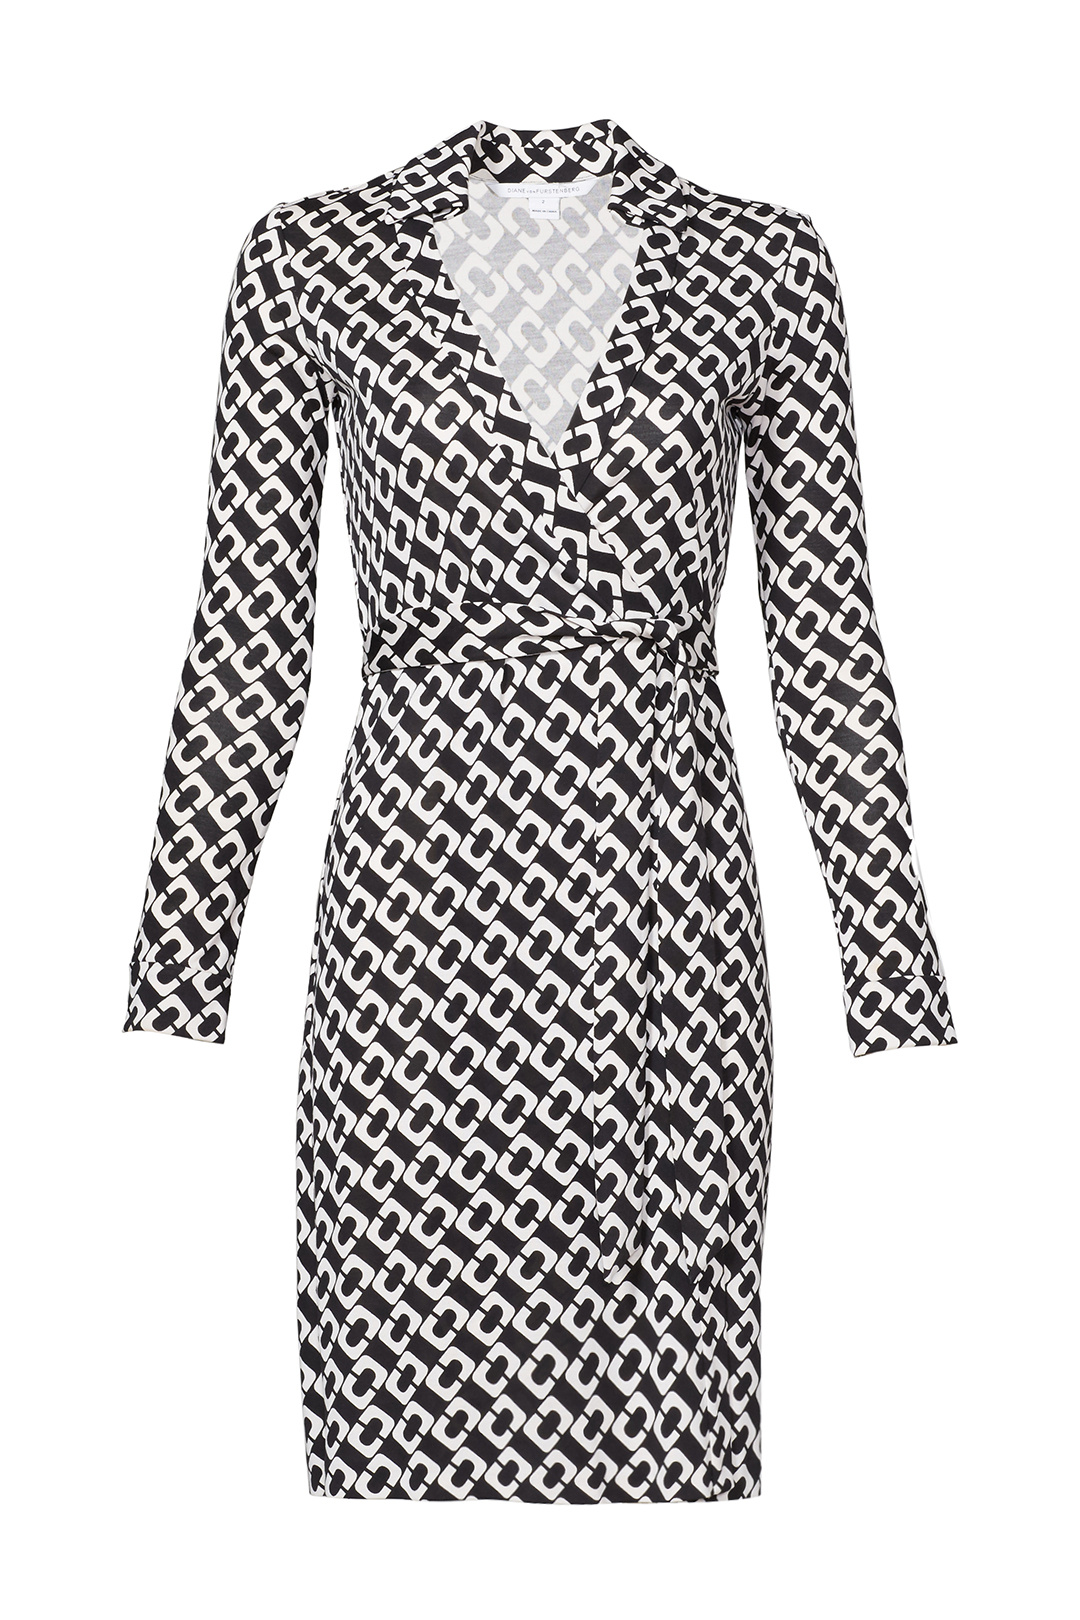 a57813fc87645 Details about Diane von Furstenberg Blue Geo-Print Women's Size 4 Wrap Dress  Silk $368- #631